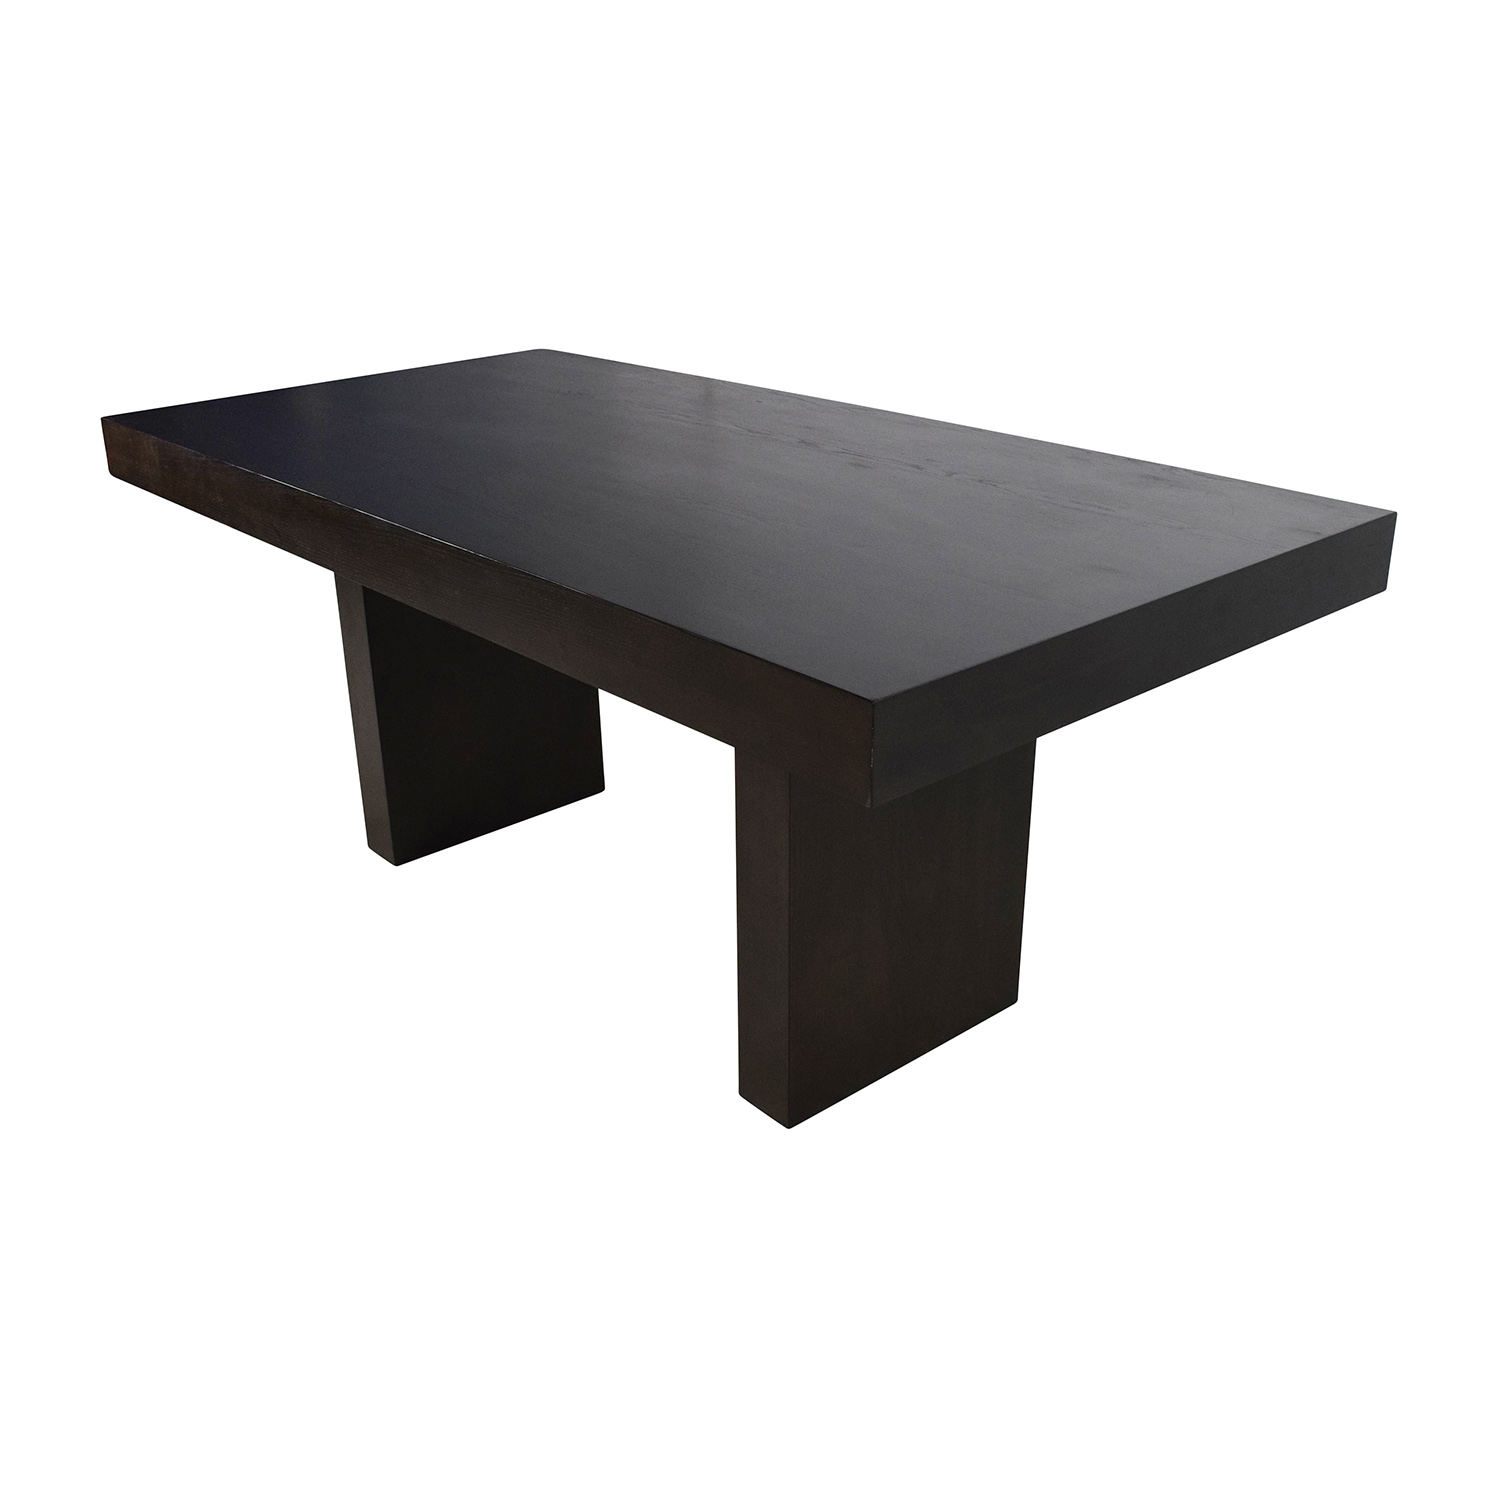 West Elm West Elm Alexa Dining Table on sale